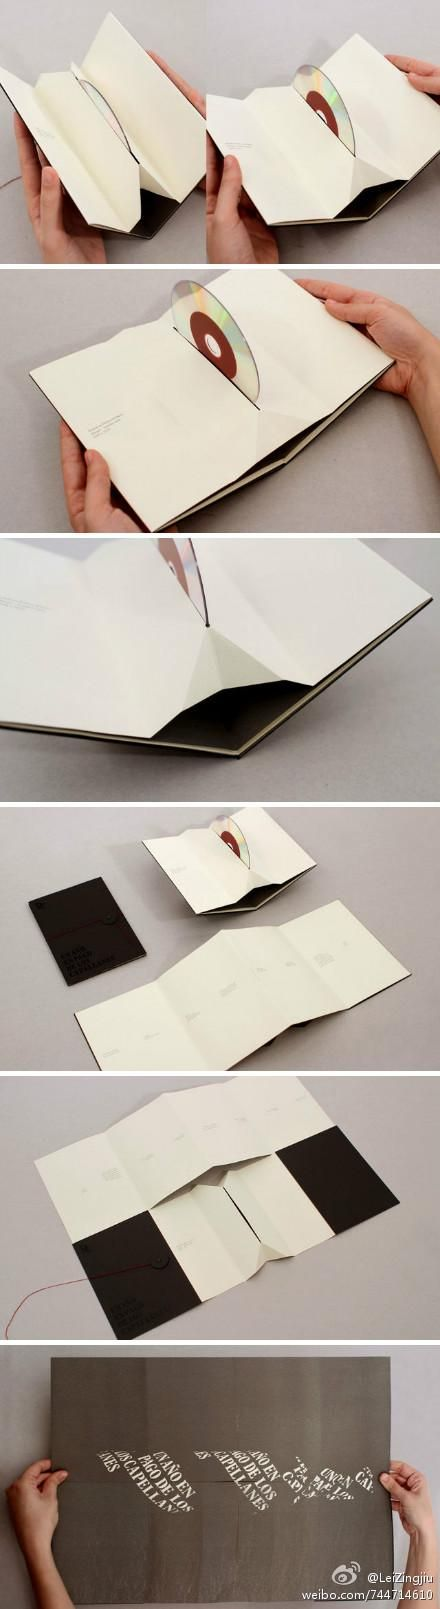 19 best Cd case design ideas images on Pinterest Cd packaging - compact cd envelope template